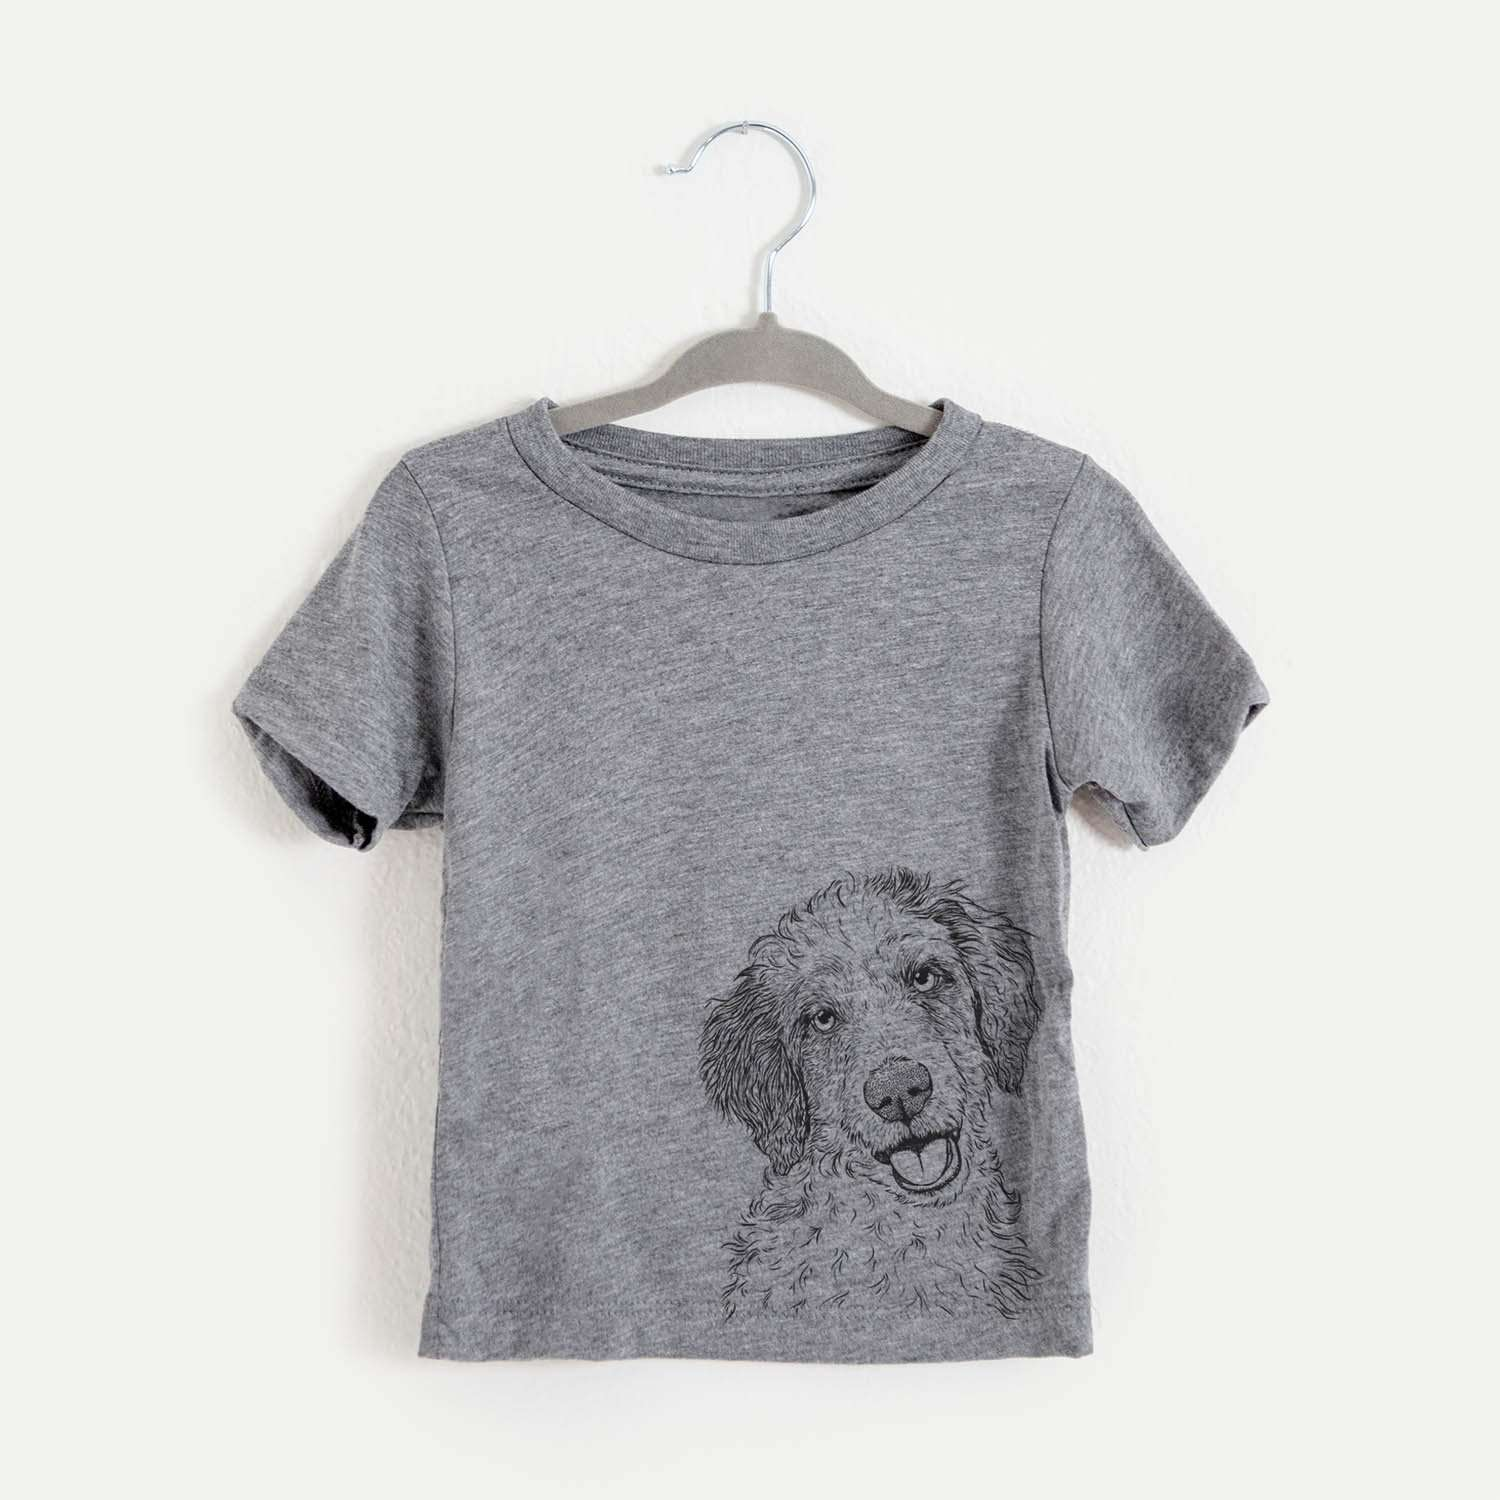 Hoge the Aussiedoodle - Kids/Youth/Toddler Shirt